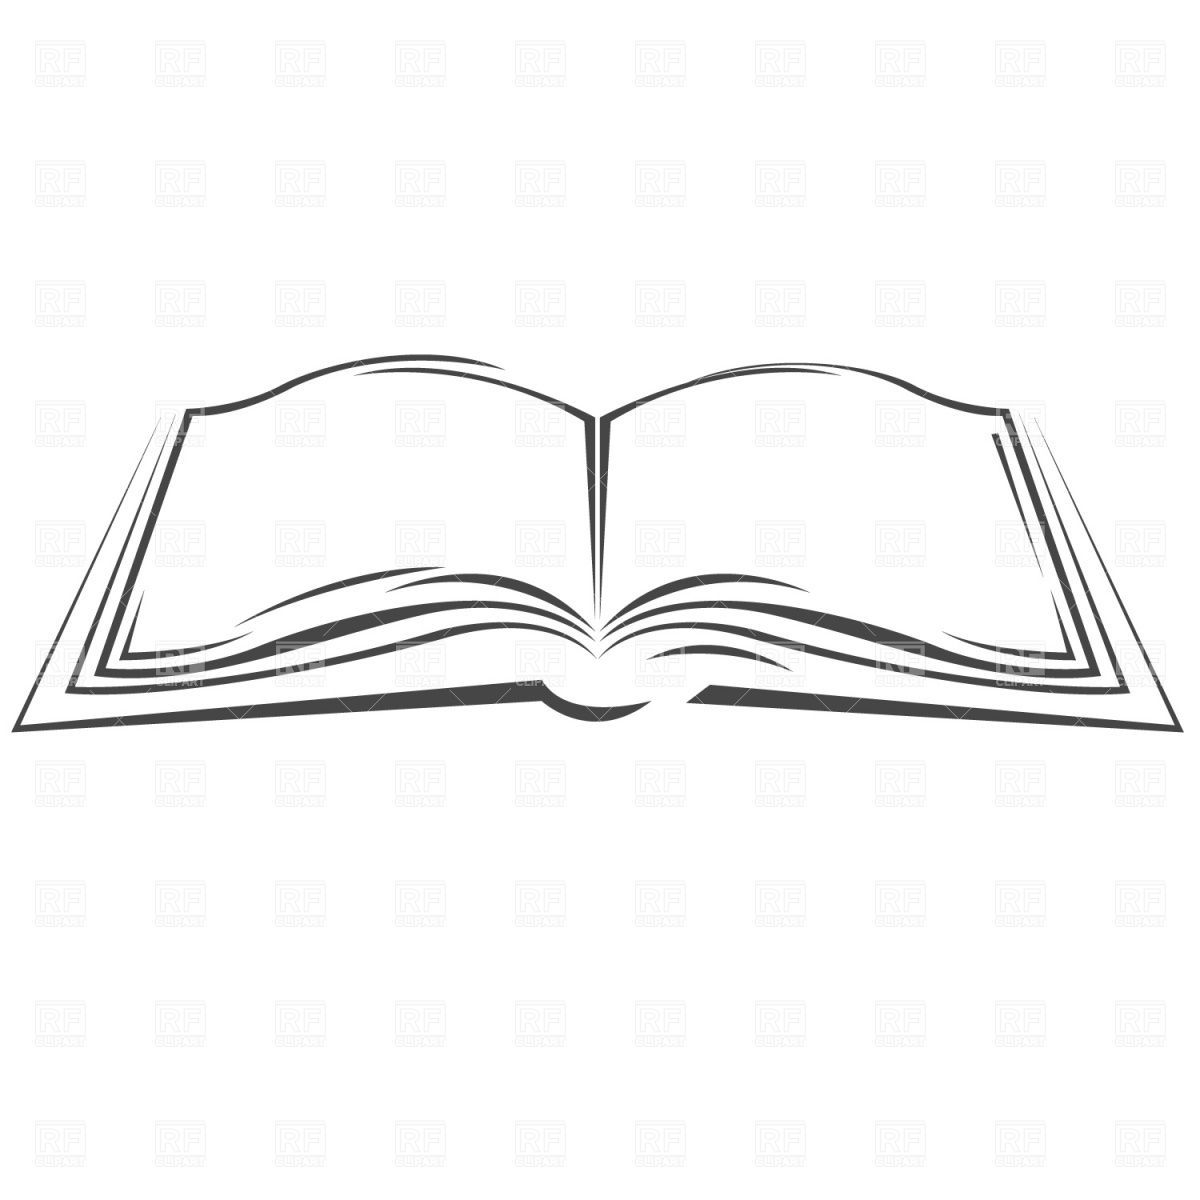 Symbolic Open Book Vector Image Vector Illustration Of Objects